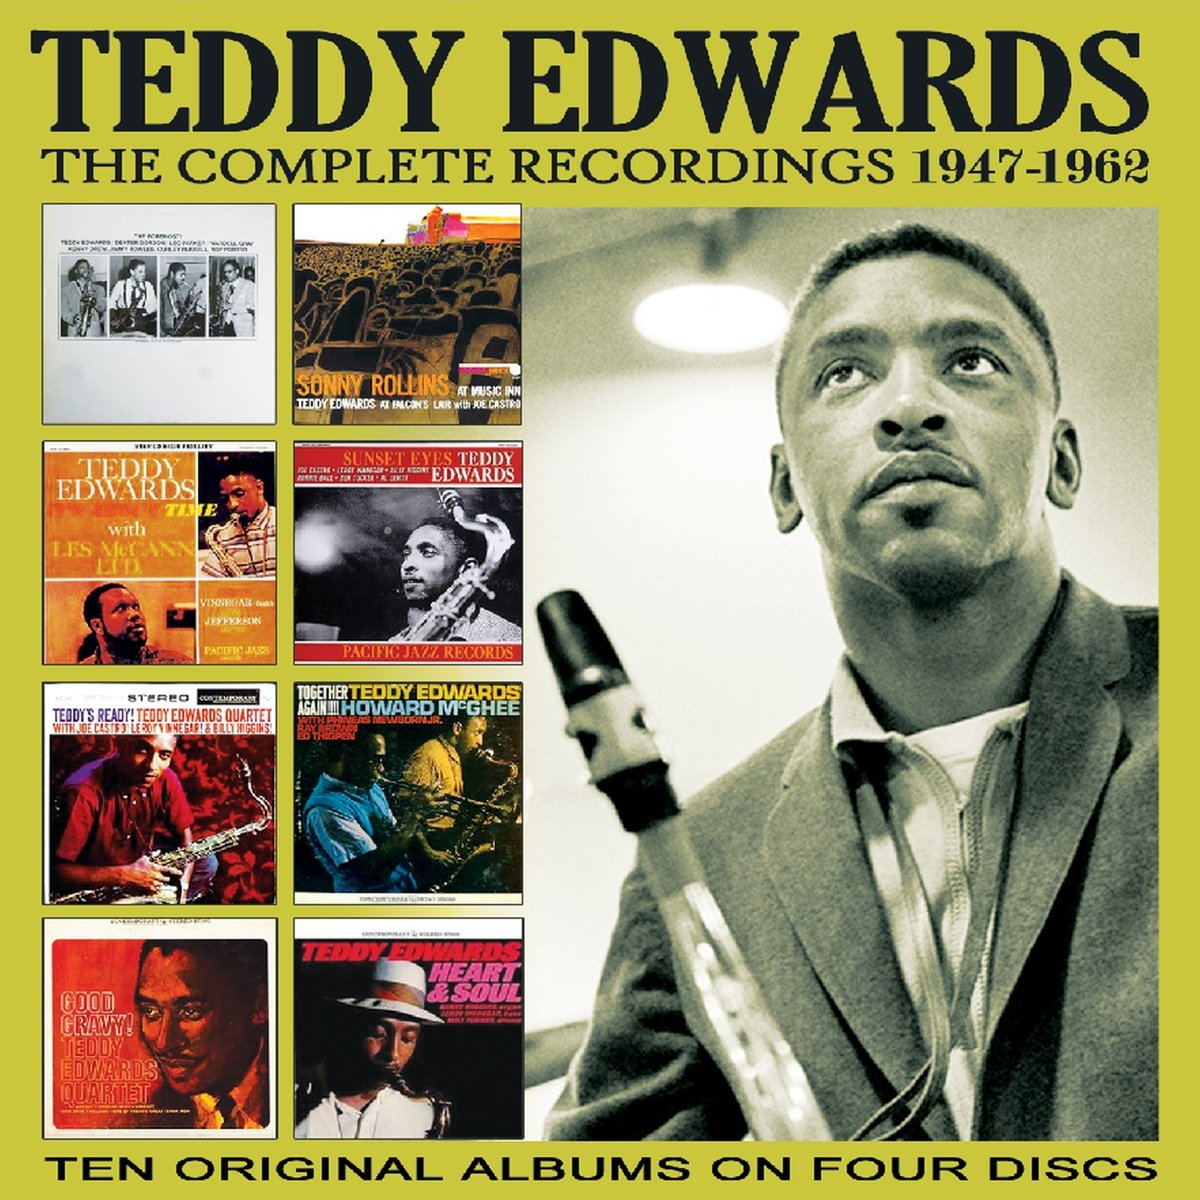 Teddy Edwards - Complete Recordings 1947-62